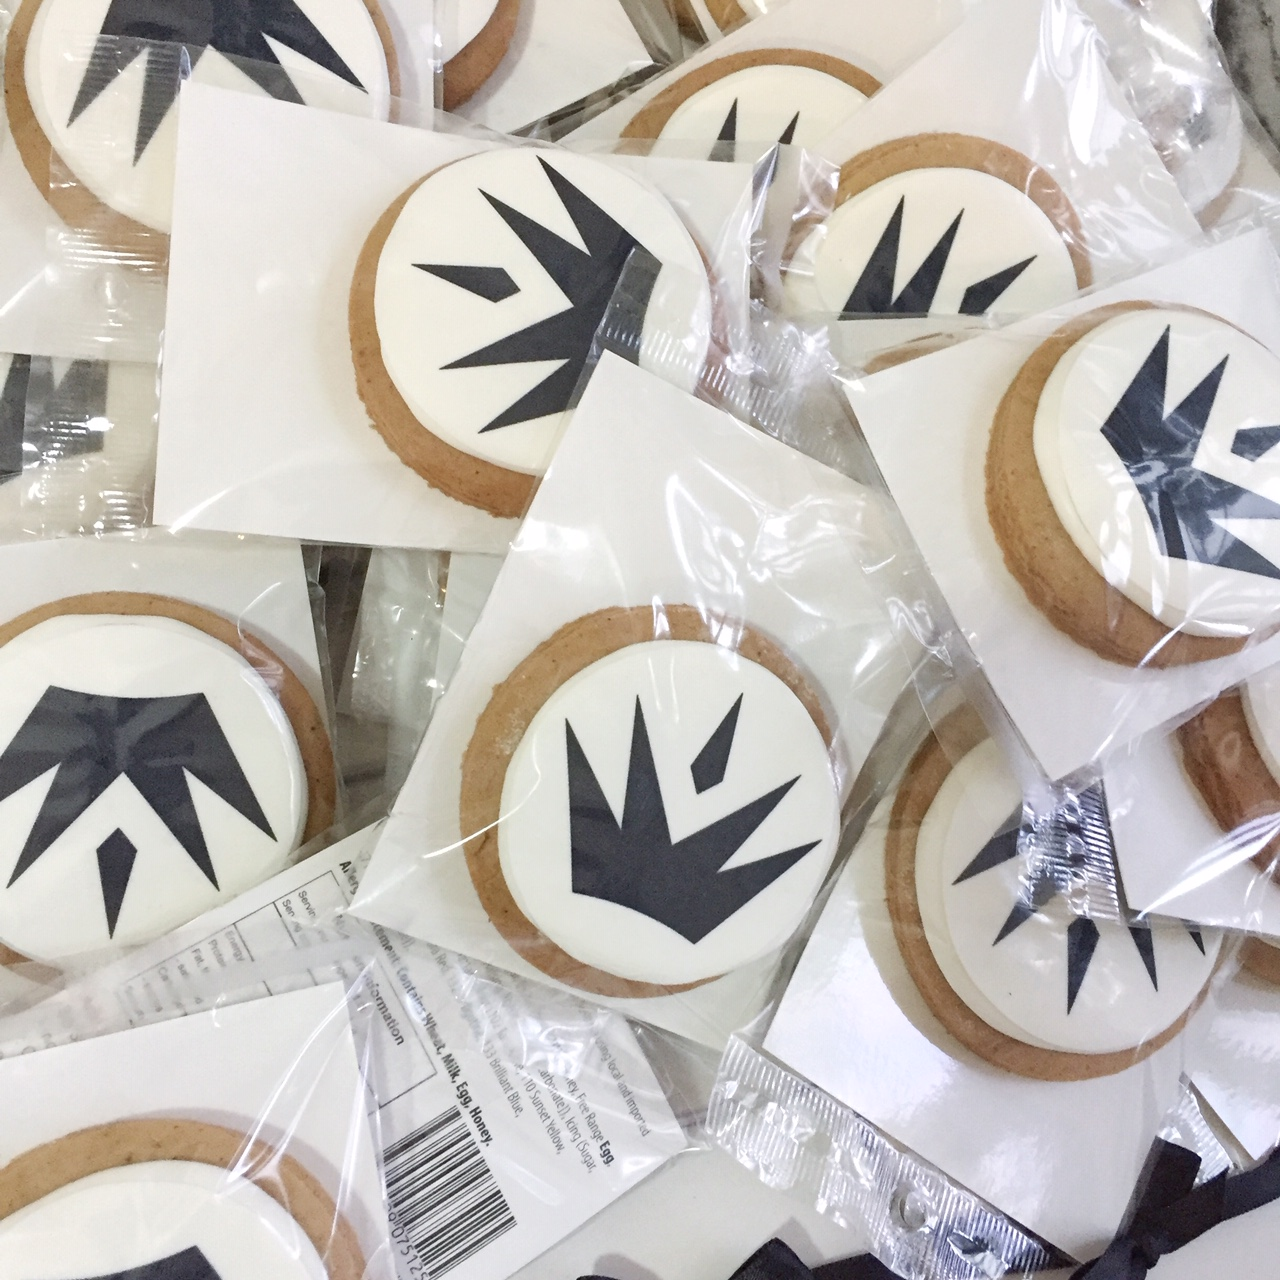 Branded cookies for Maren Morris' Media Kits